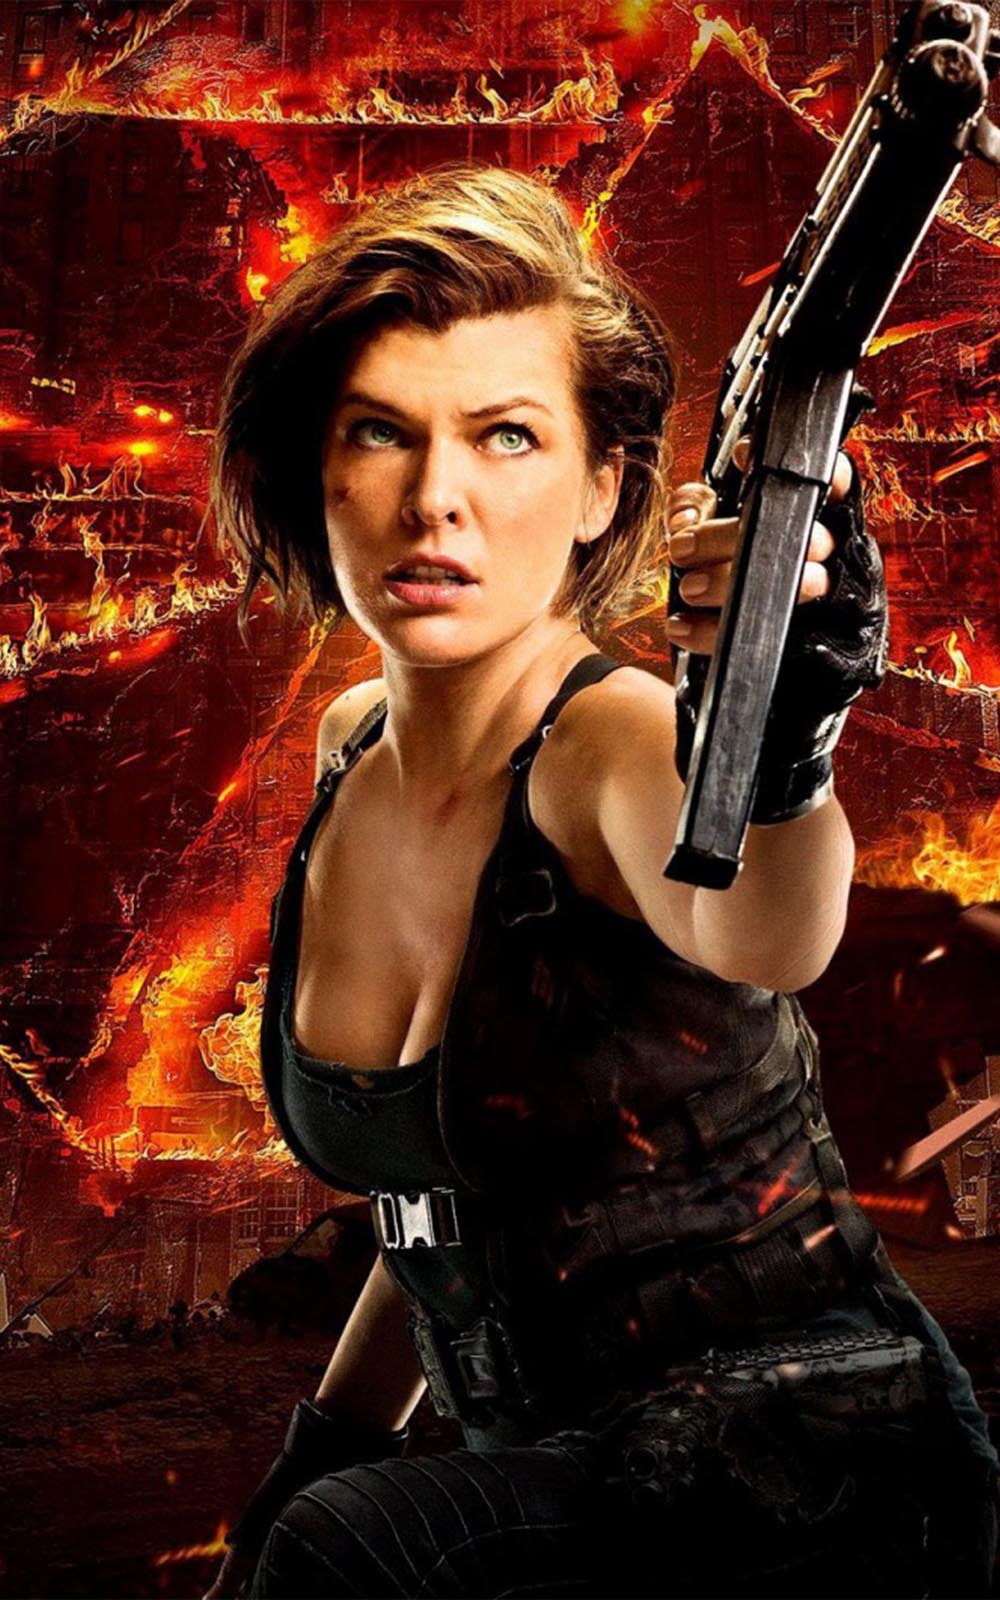 Milla jovovich resident evil the final chapter download - Resident evil the final chapter wallpaper ...